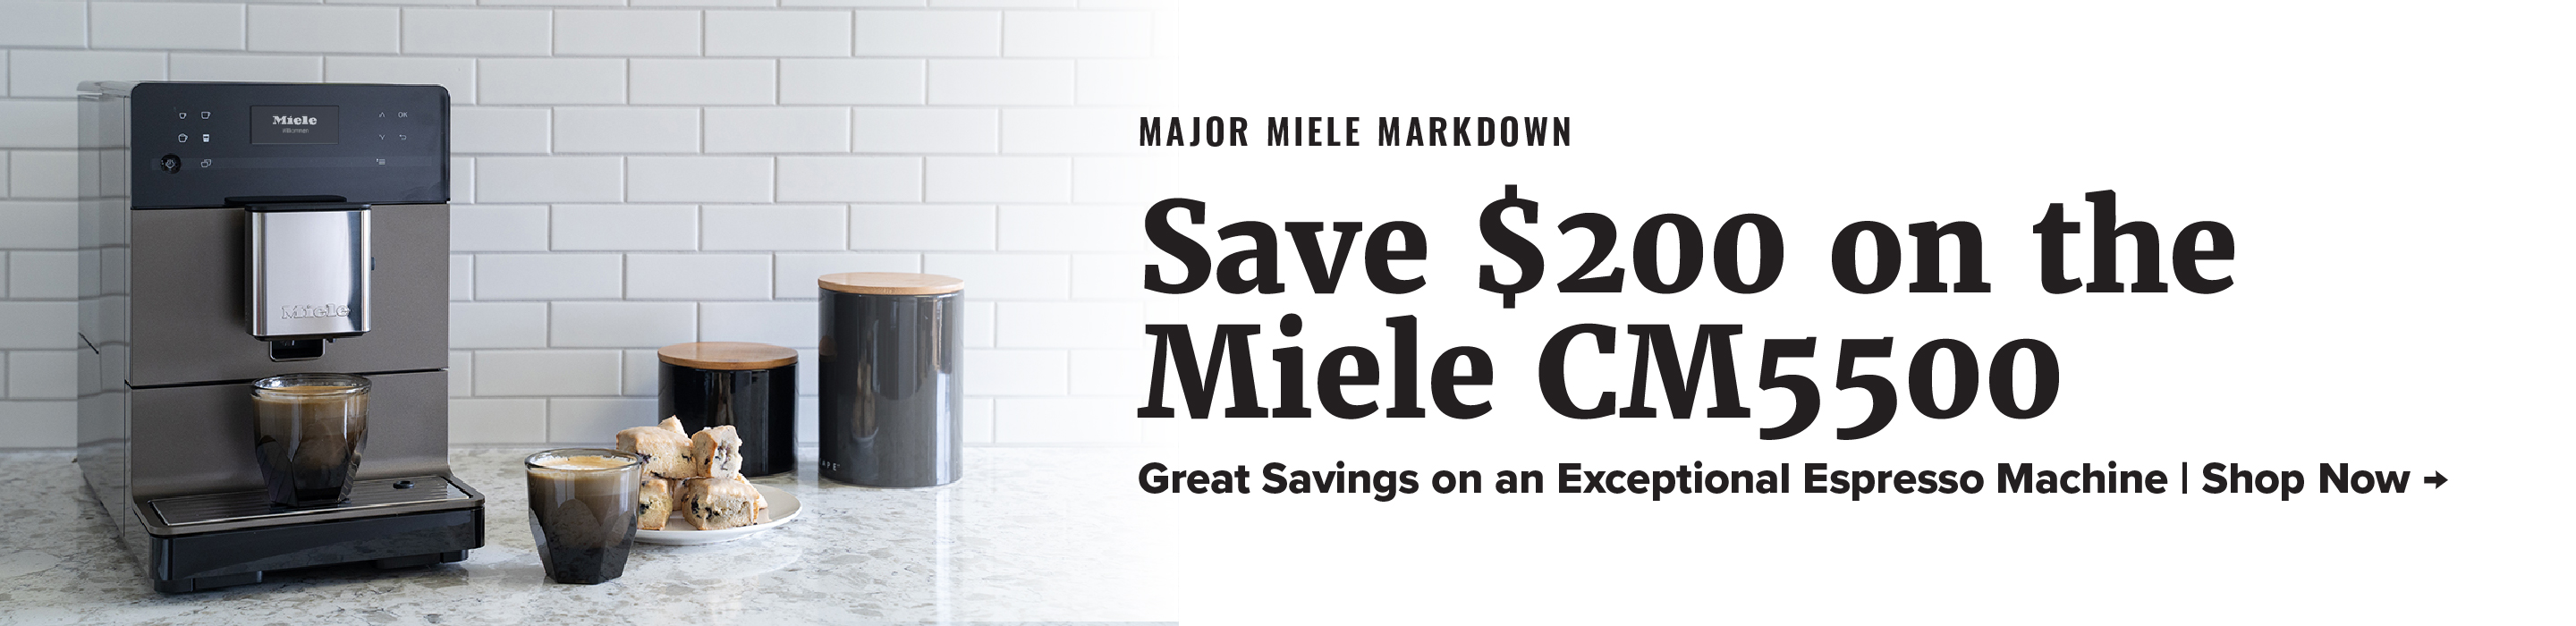 Save $200 on the Miele CM5500 today!